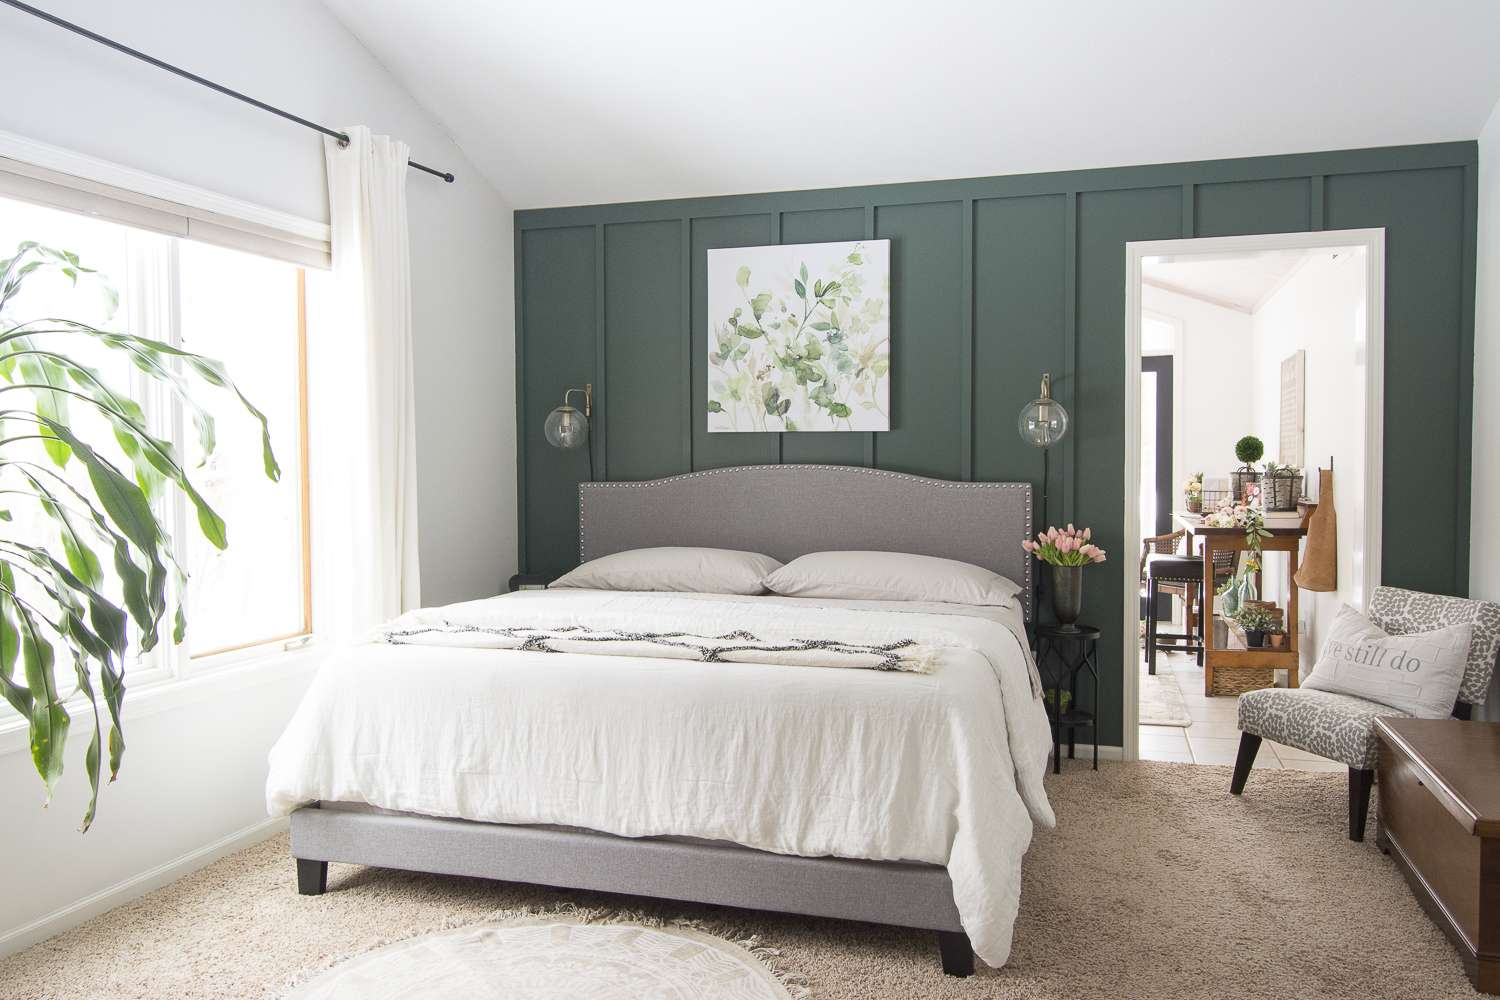 Are you looking for cozy bedroom ideas for spring? Today I'm sharing tips on how to make your bedroom cozy even as we head into the spring season. #fromhousetohaven #springbedroomideas #cozybedroomideas